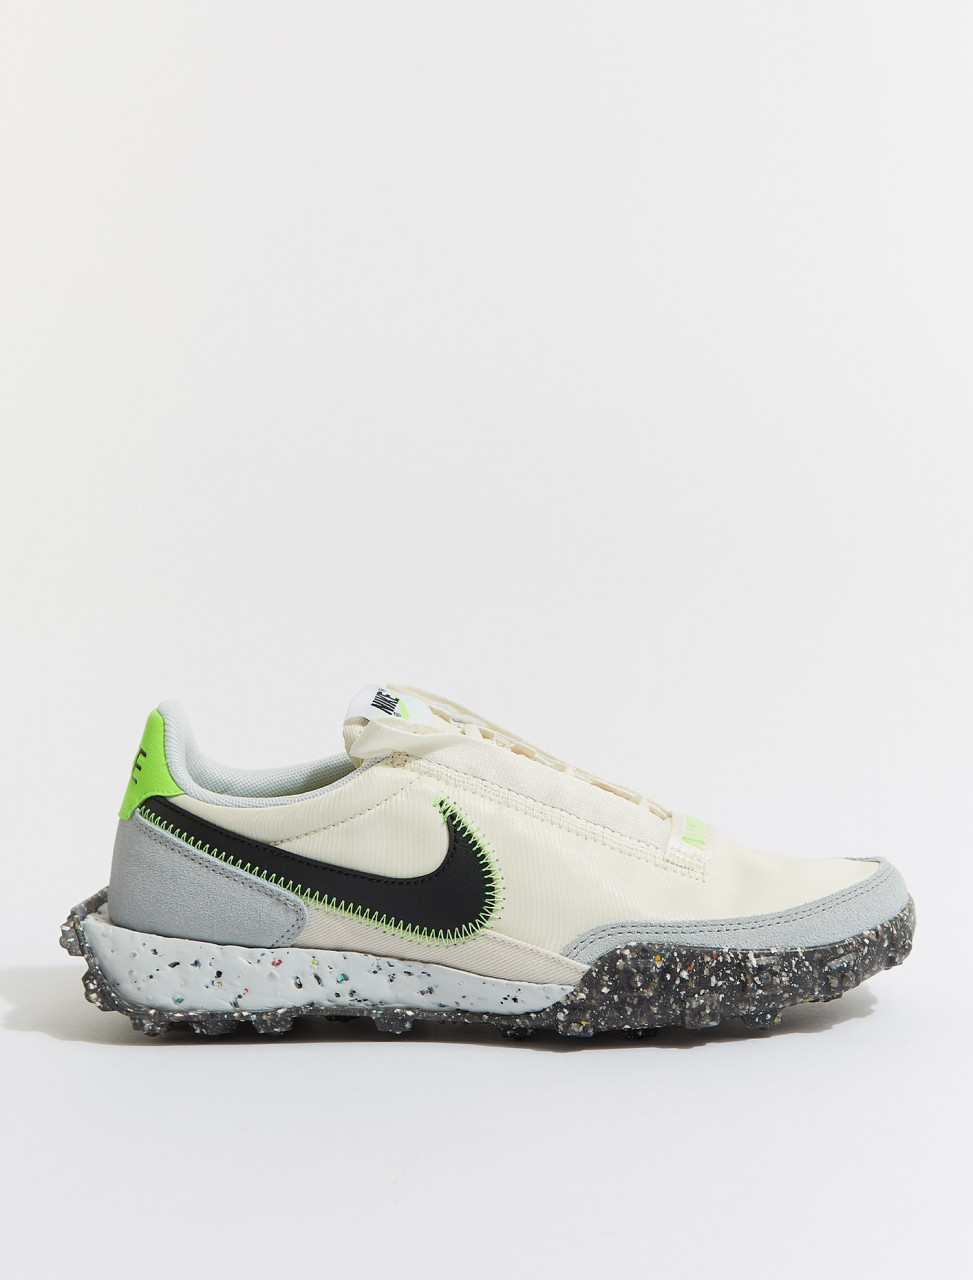 CT1983-102 NIKE WAFFLE RACER CRATER PALE IVORY BLACK